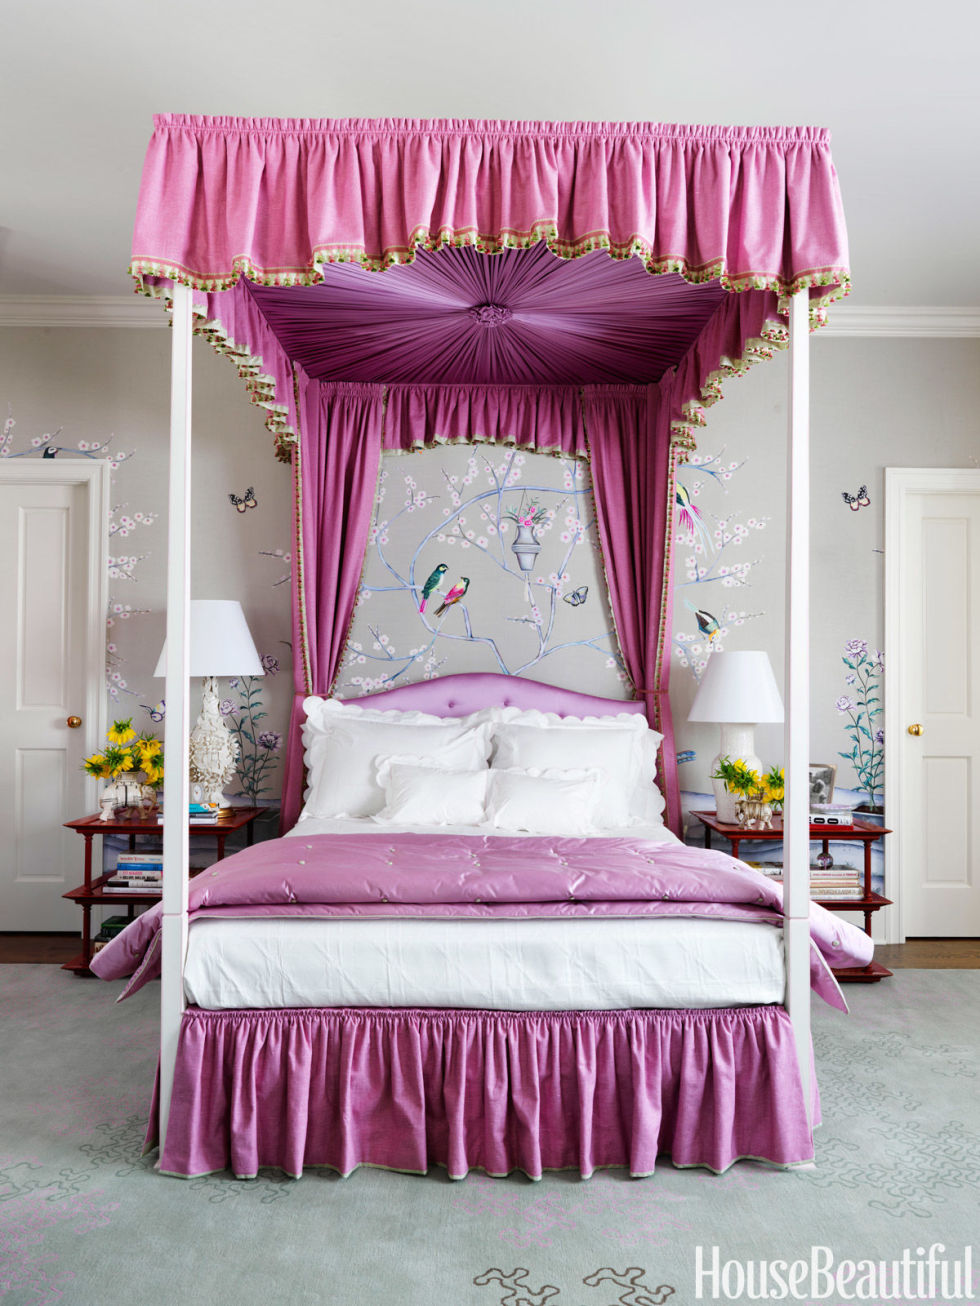 Bedroom Paint Ideas Pink pink rooms - ideas for pink room decor and designs